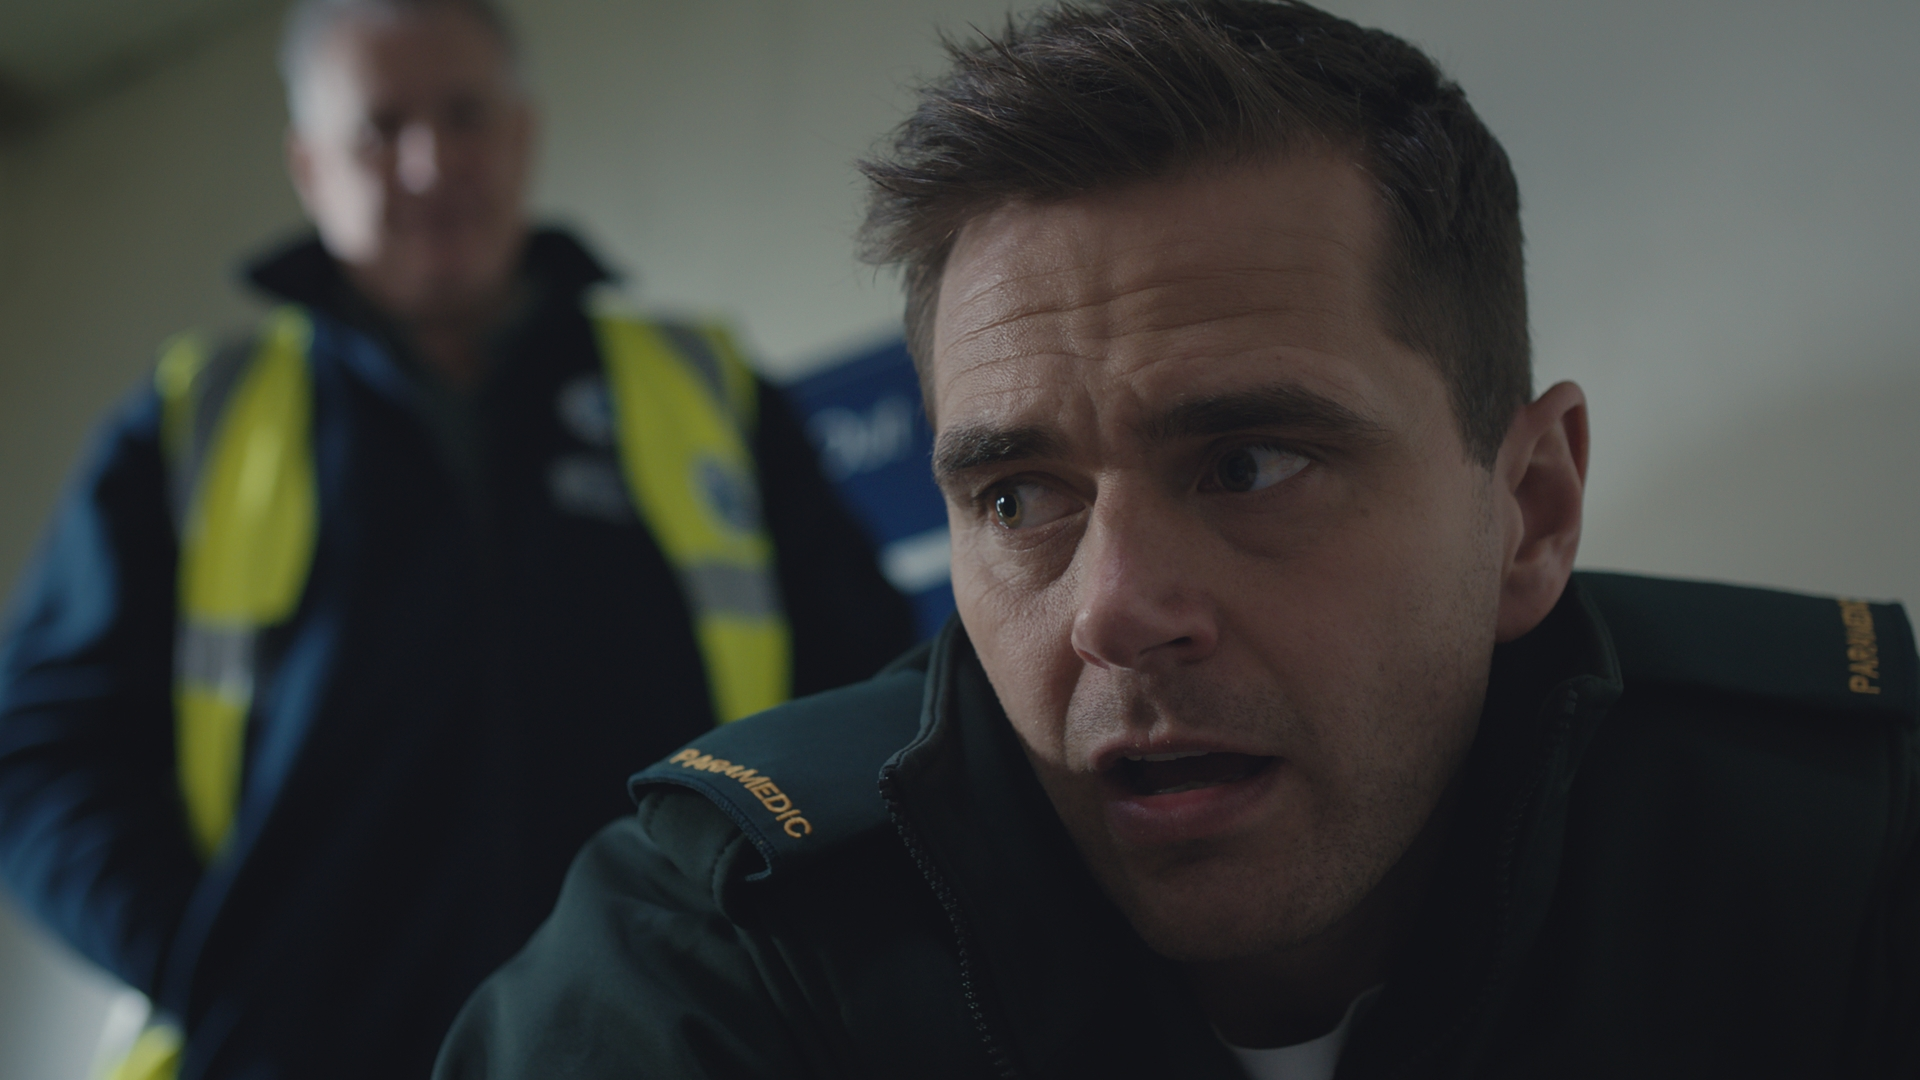 Casualty review with spoilers: A little help from my friends